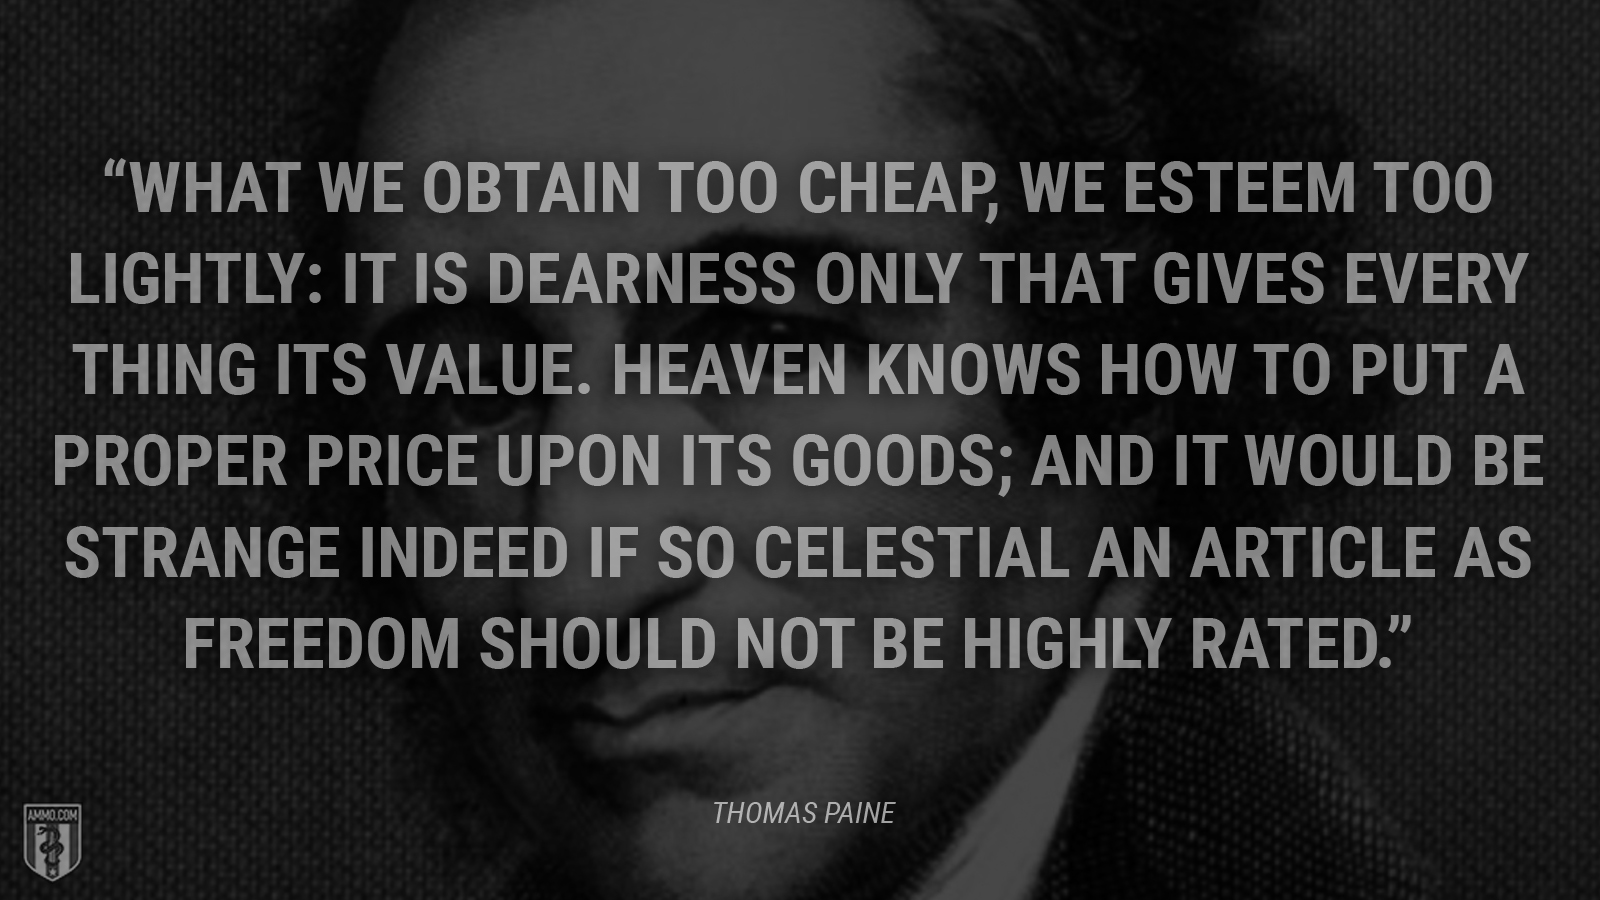 """What we obtain too cheap, we esteem too lightly: it is dearness only that gives every thing its value. Heaven knows how to put a proper price upon its goods; and it would be strange indeed if so celestial an article as freedom should not be highly rated."" - Thomas Paine"